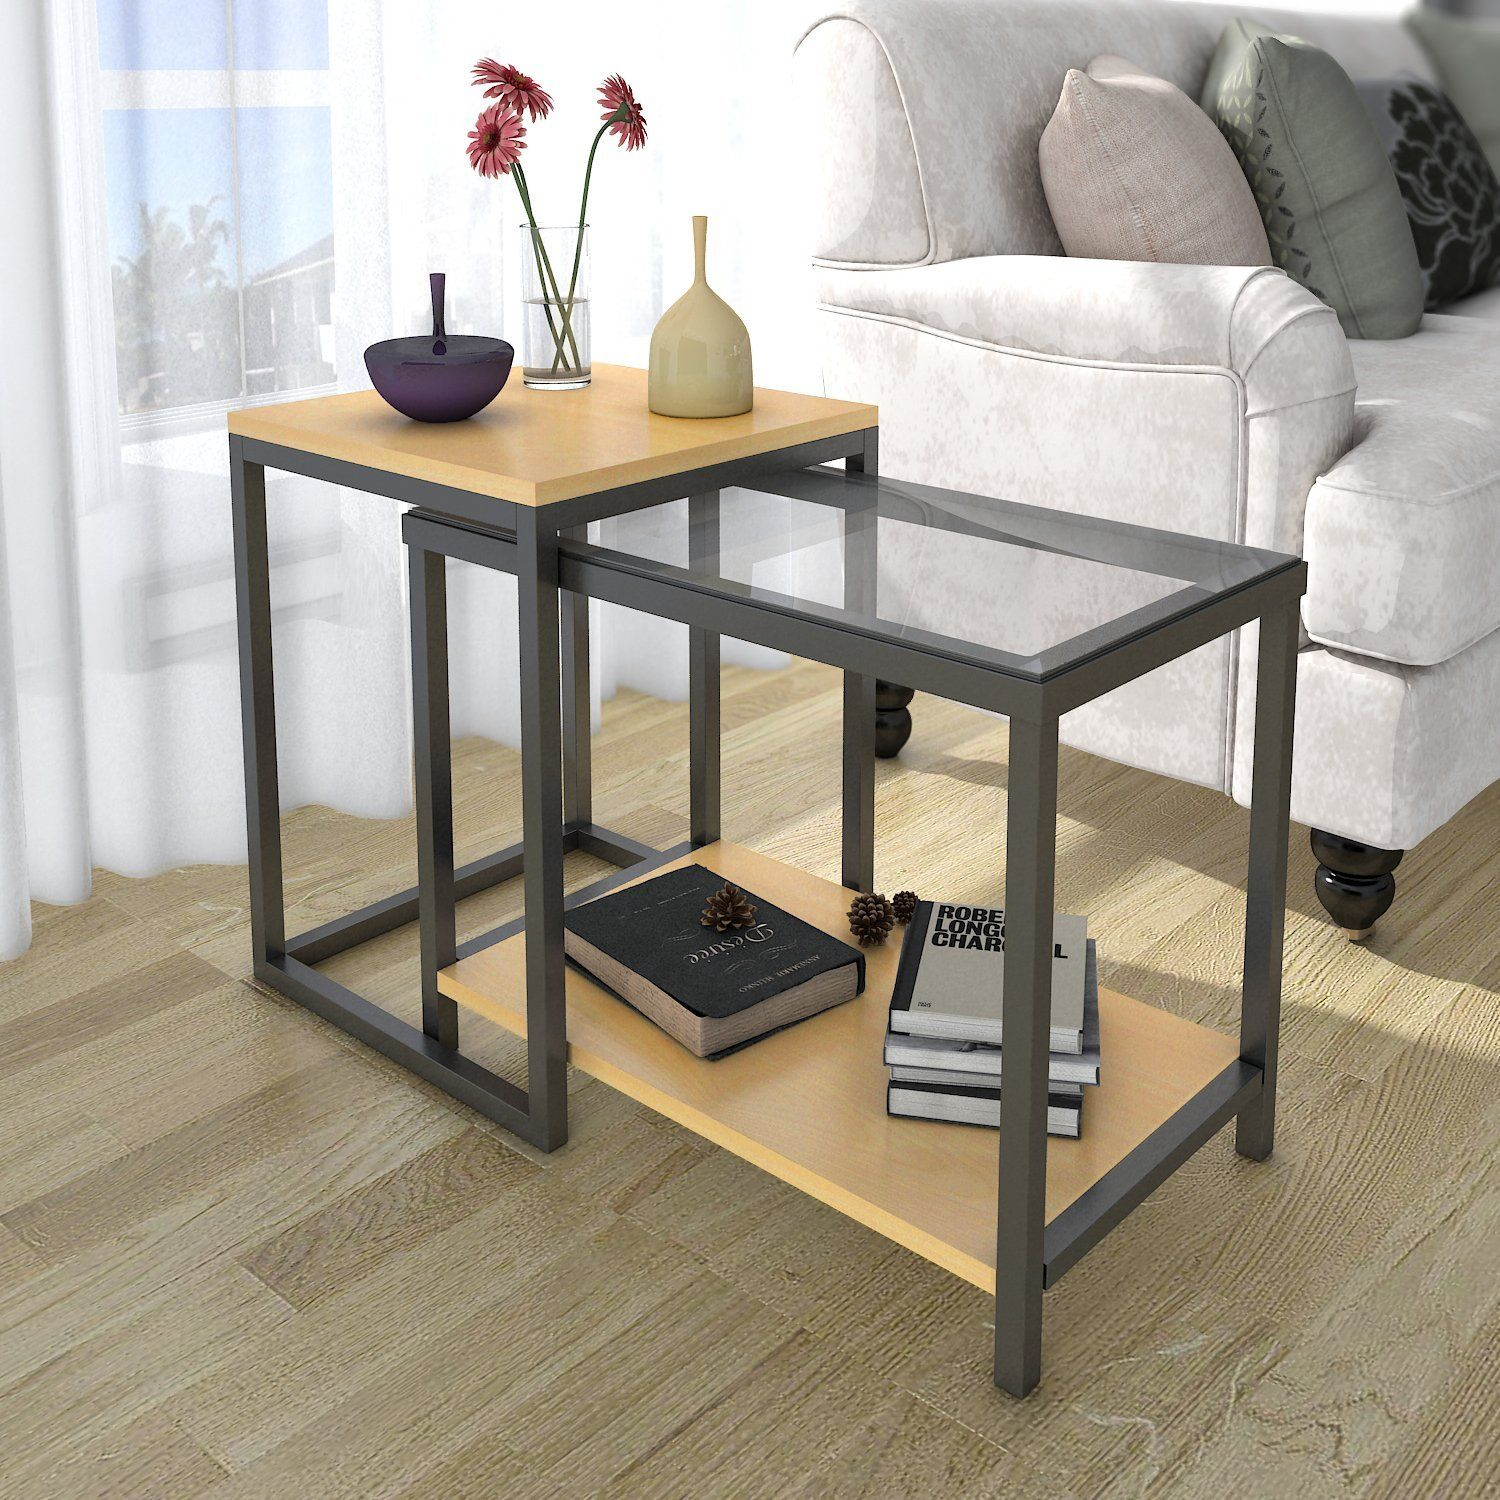 lifewit piece end table nesting sofa side set coffee and accent sets home kitchen small desk with drawers high patio rattan furniture bronze glass clear lamp hairpin leg silver